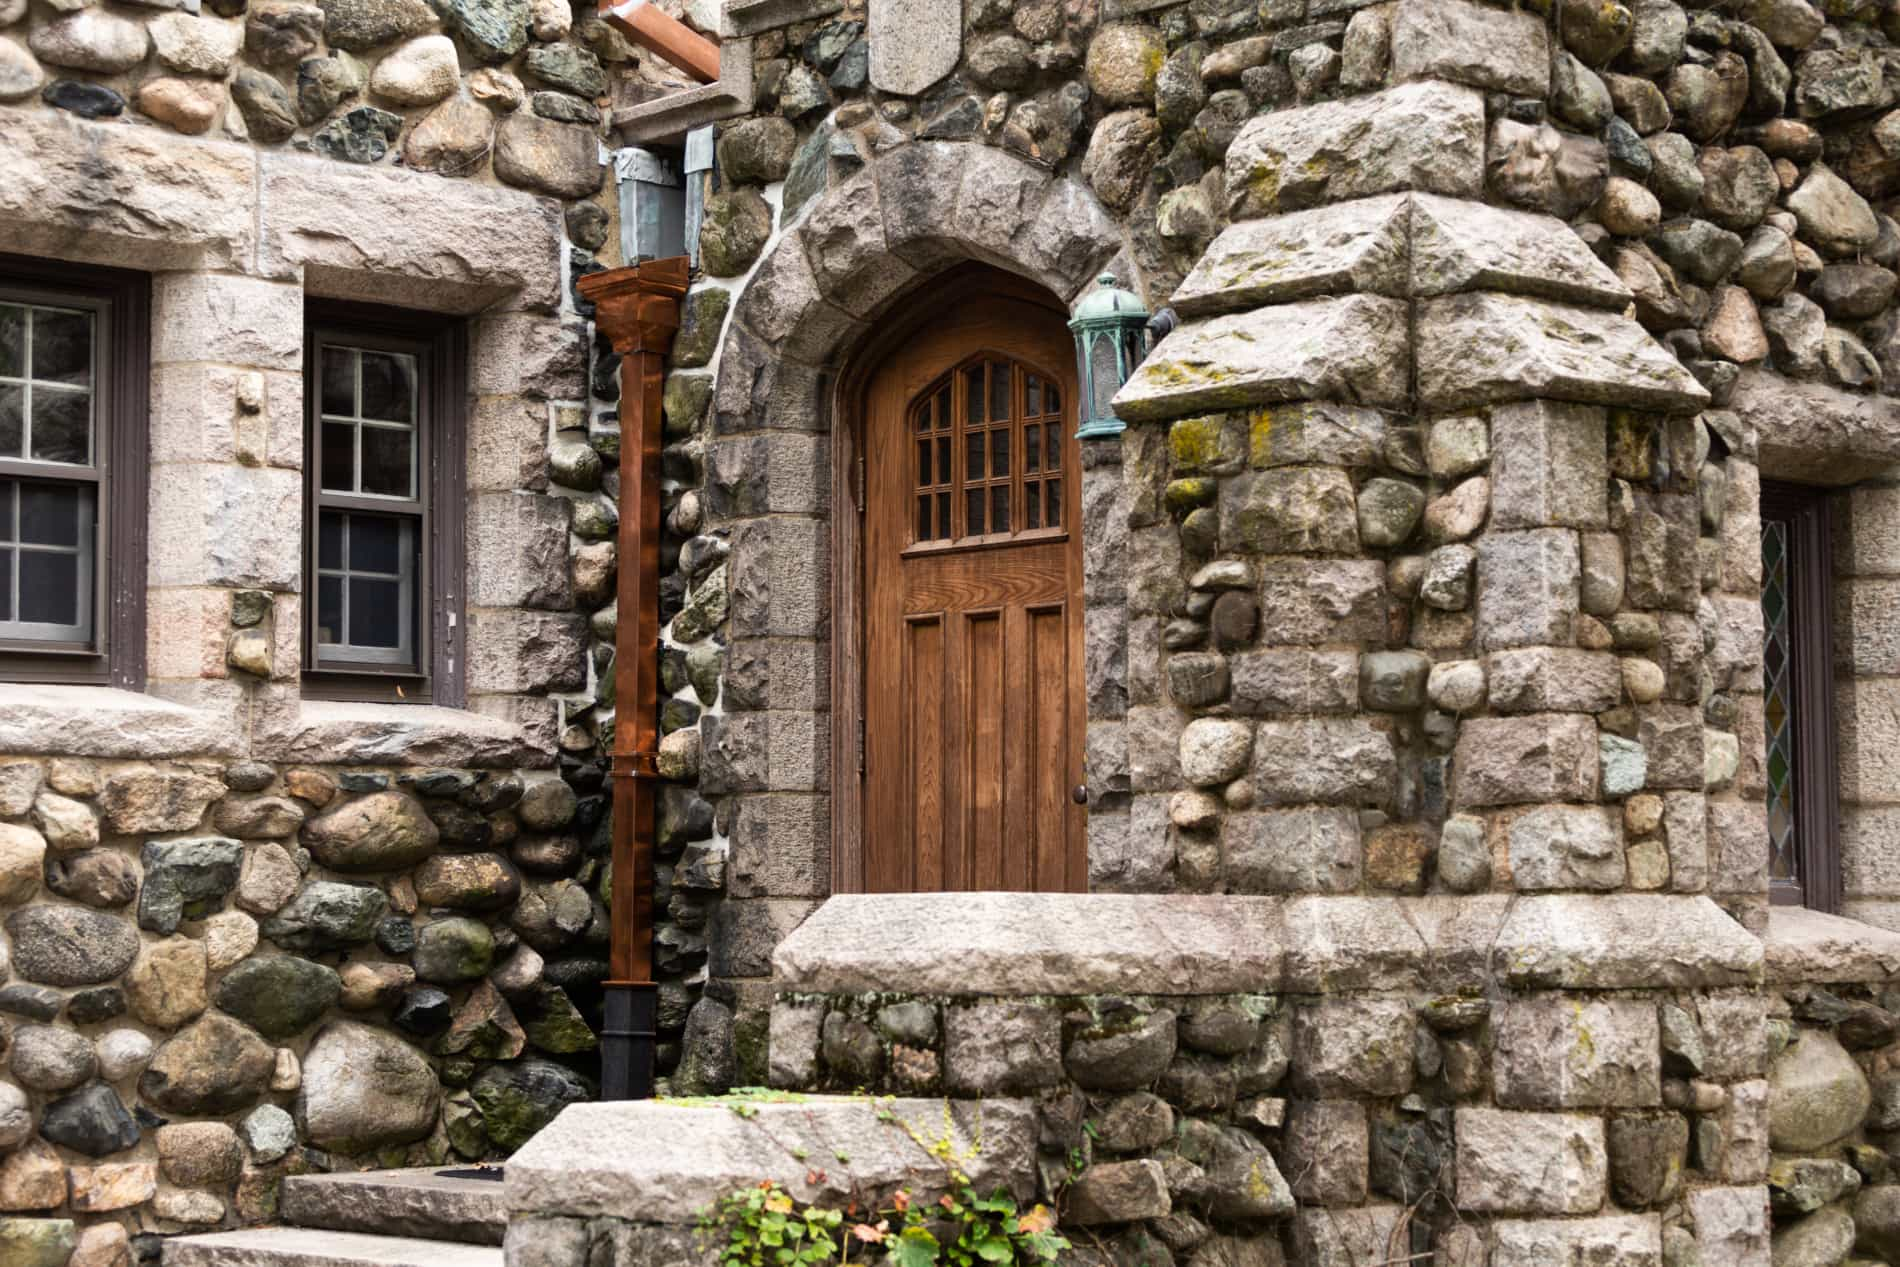 A stone church with a wooden door and a copper lantern